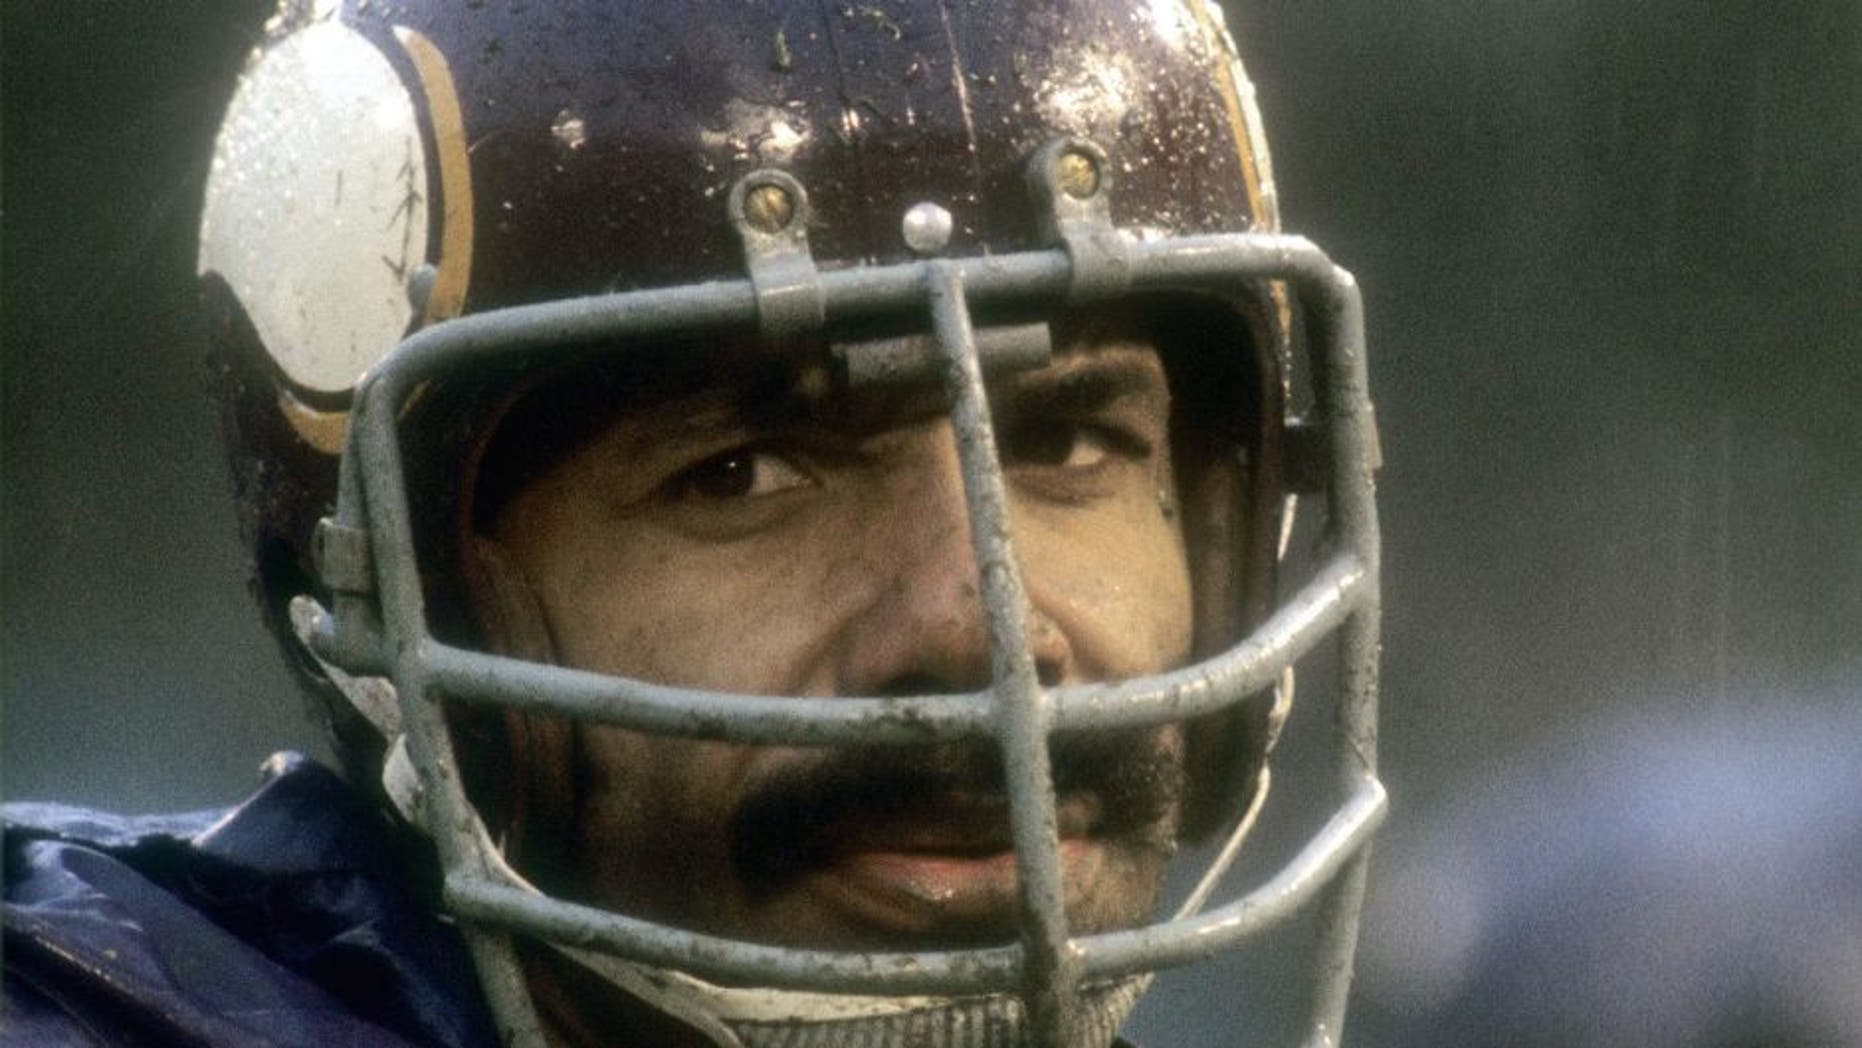 CIRCA 1970: Jim Marshall #70 of the Minnesota Vikings watches the action from the sidelines during an NFL football game circa 1970. Marshall played for the Vikings from 1961-79. (Photo by Focus on Sport/Getty Images)